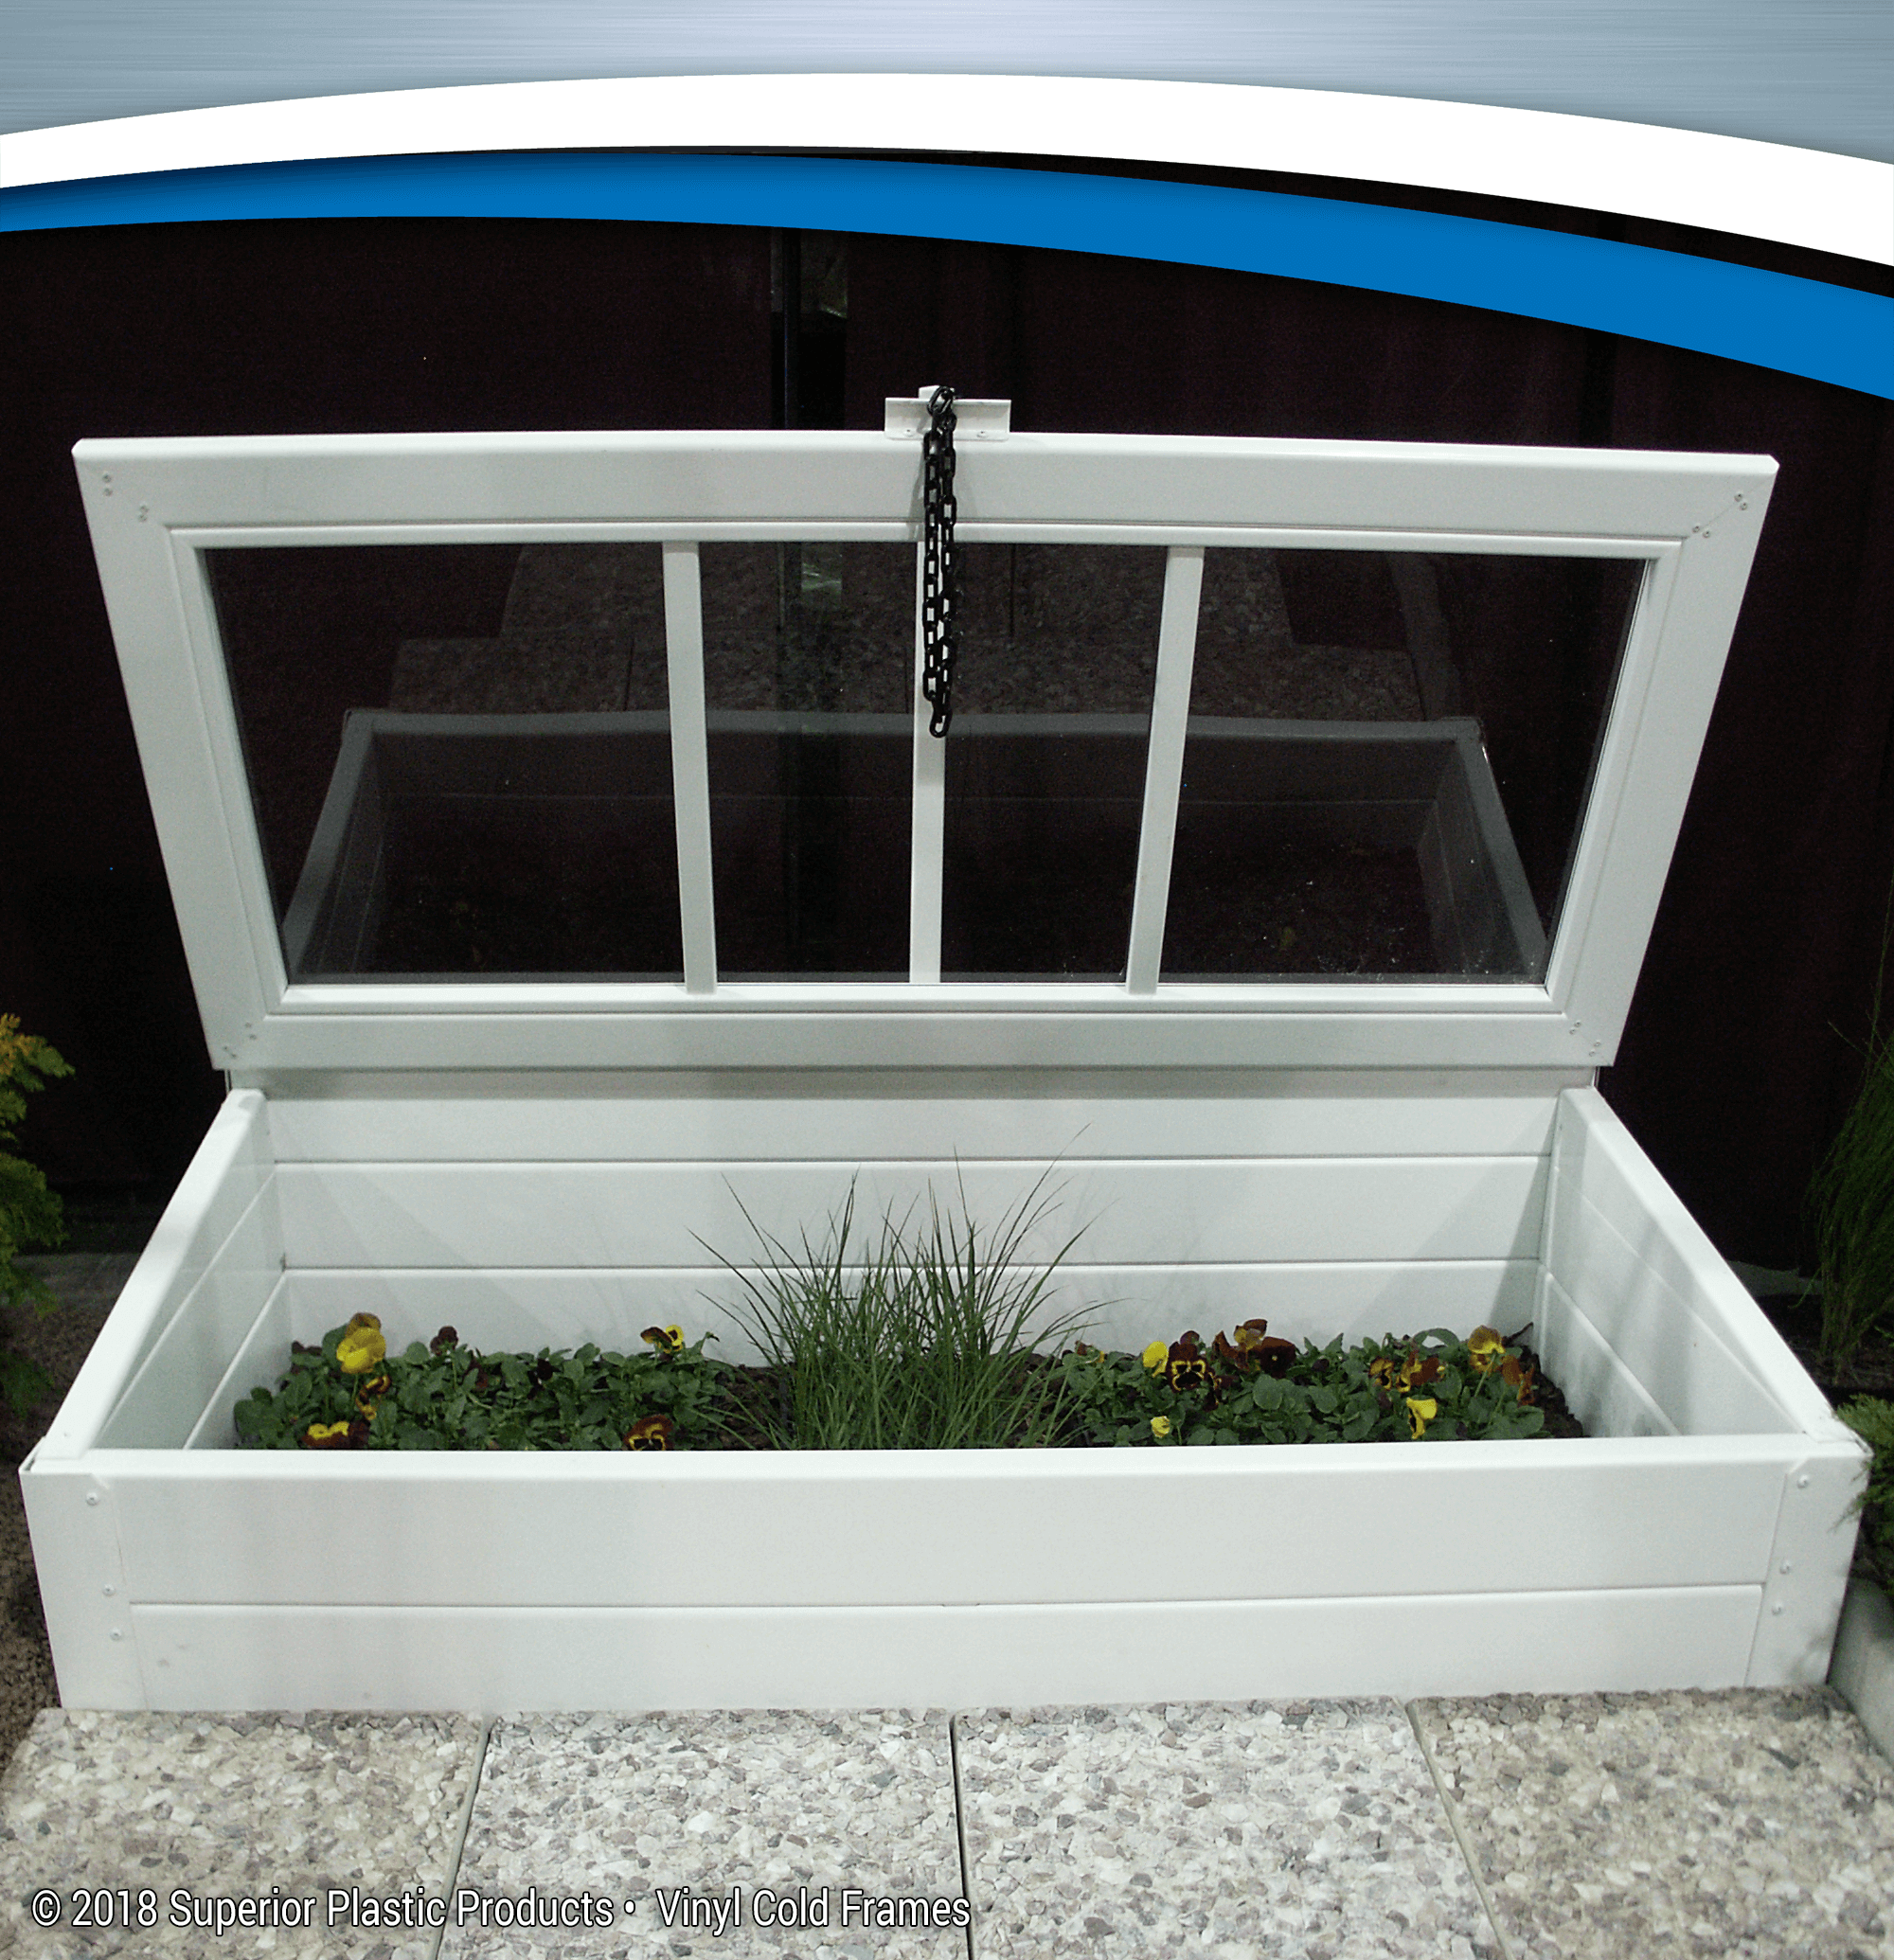 Vinyl Cold Frames - Superior Plastic Products